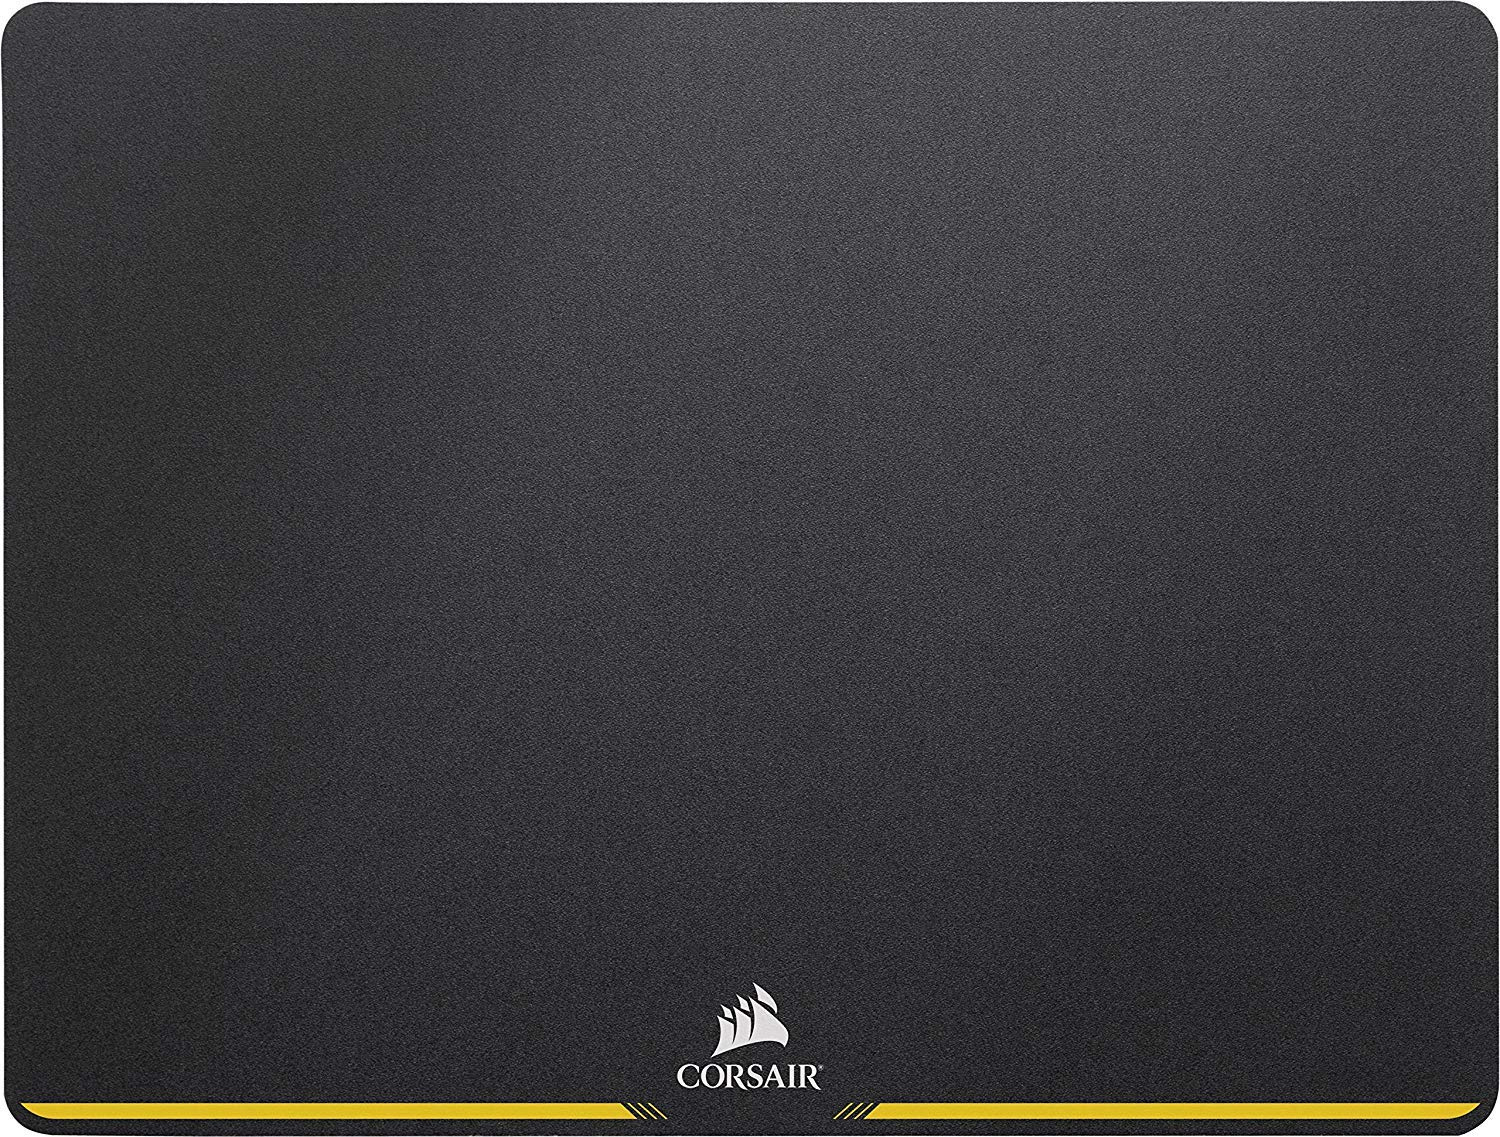 Corsair Gaming MM400 High Speed Gaming Mouse Pad by Corsair